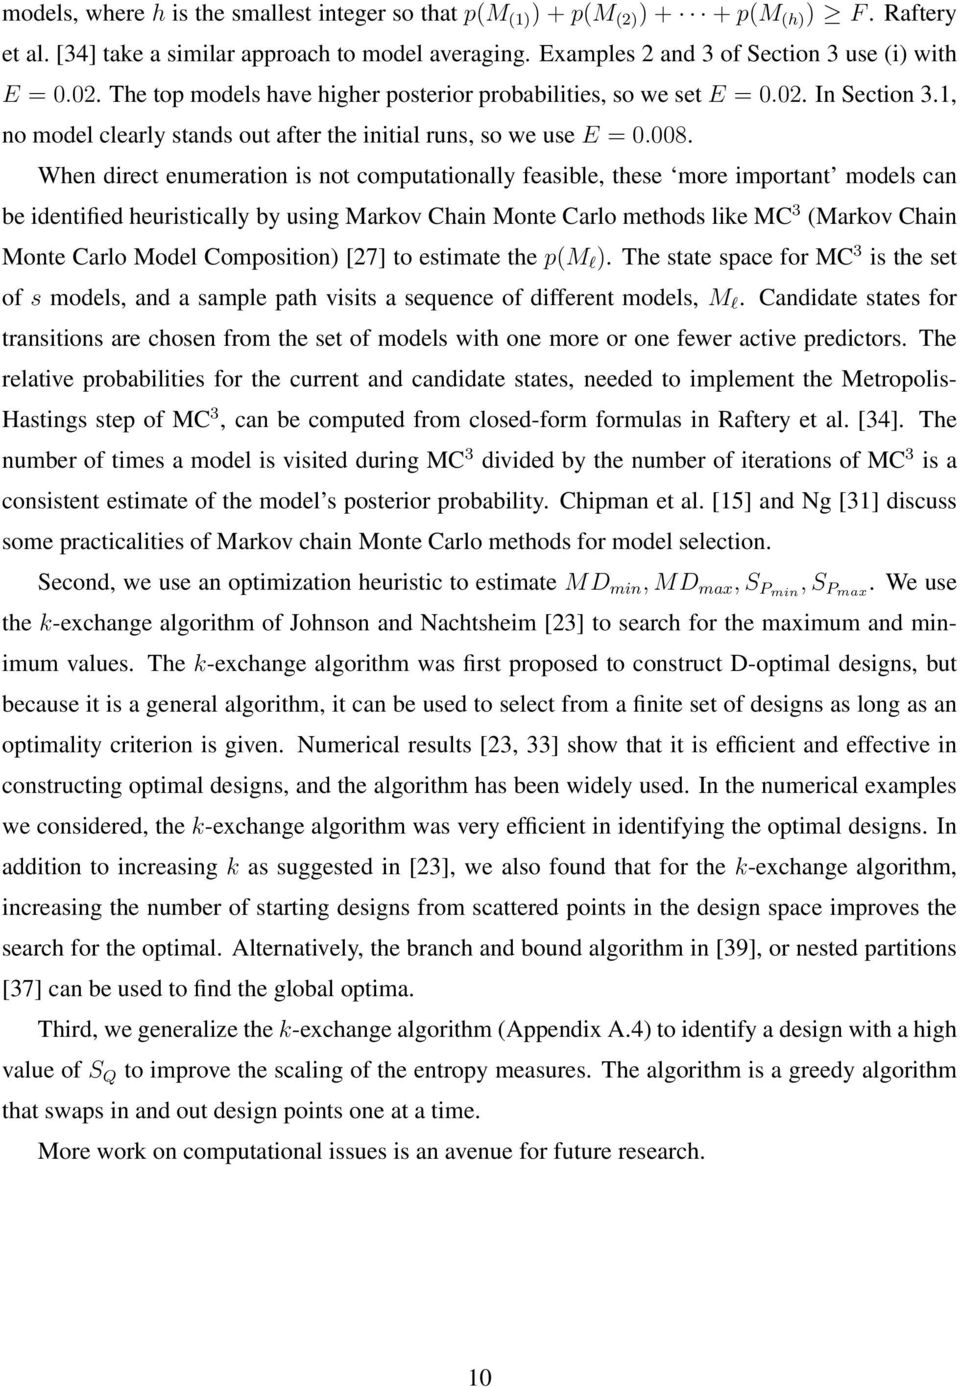 When direct enumeration is not computationay feasibe, these more important modes can be identified heuristicay by using Markov Chain Monte Caro methods ike MC 3 (Markov Chain Monte Caro Mode